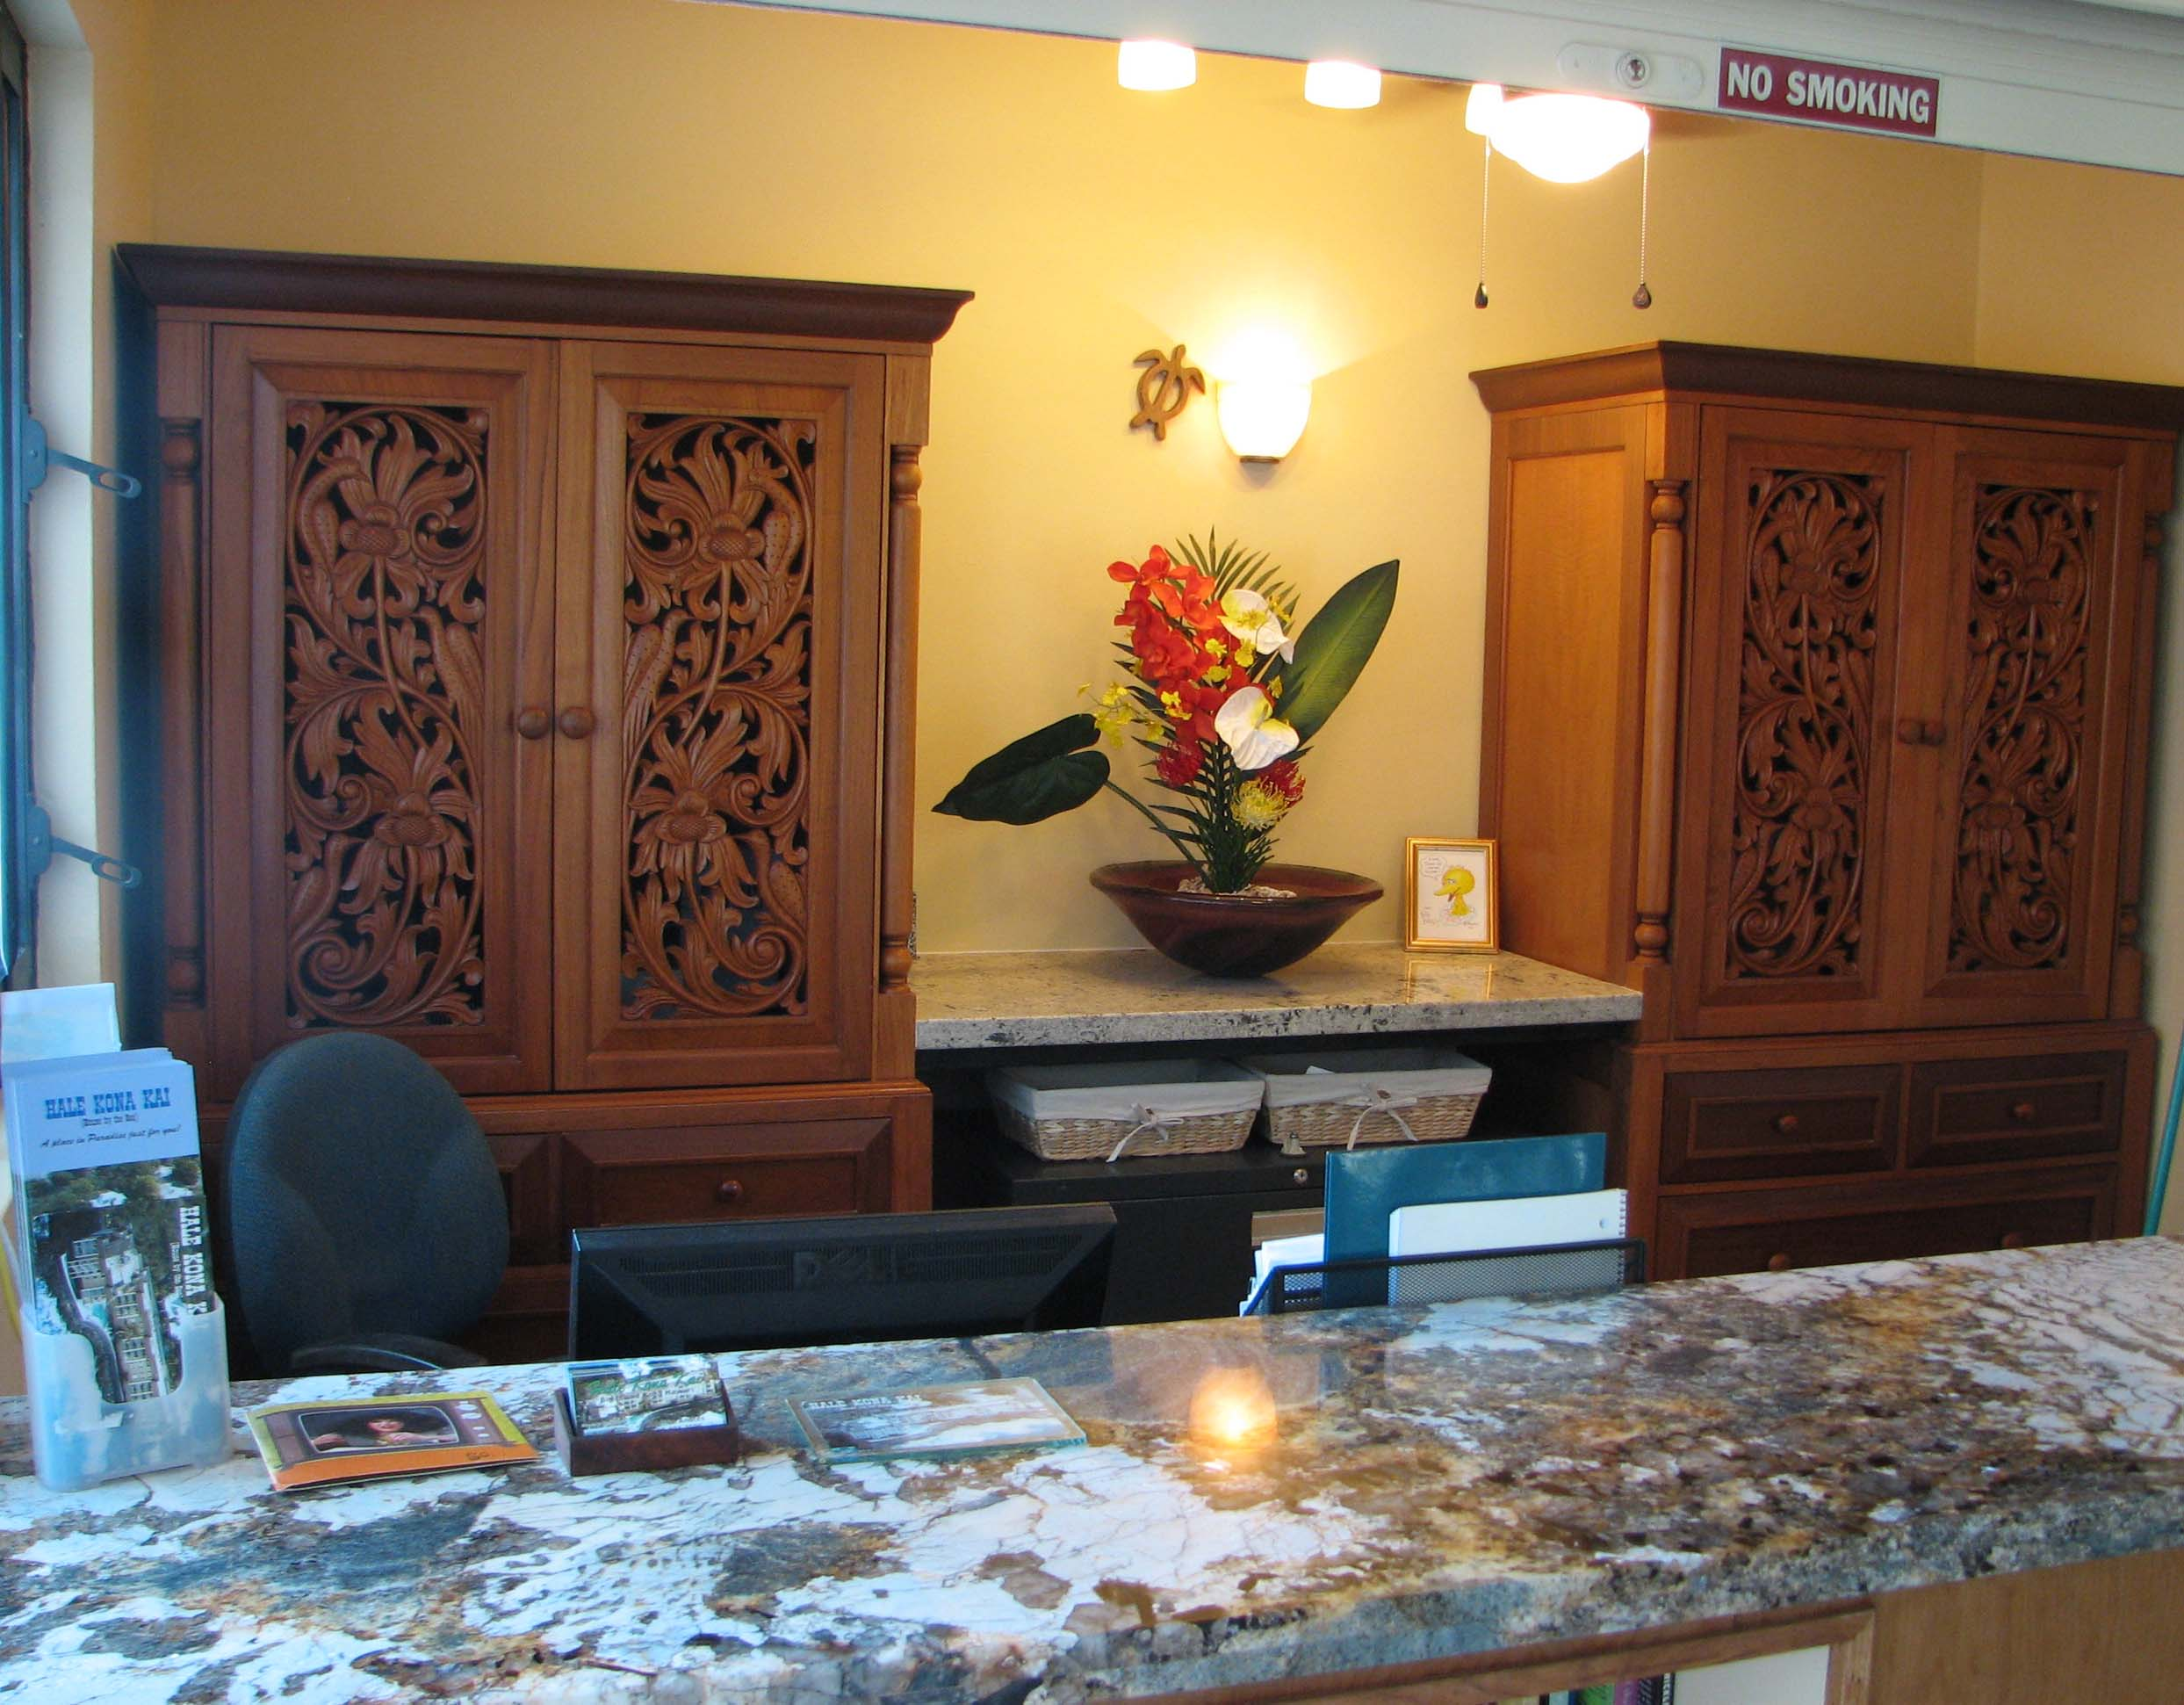 Next door to the north of Kona Reef is our Kona Now Office ready to greet you.